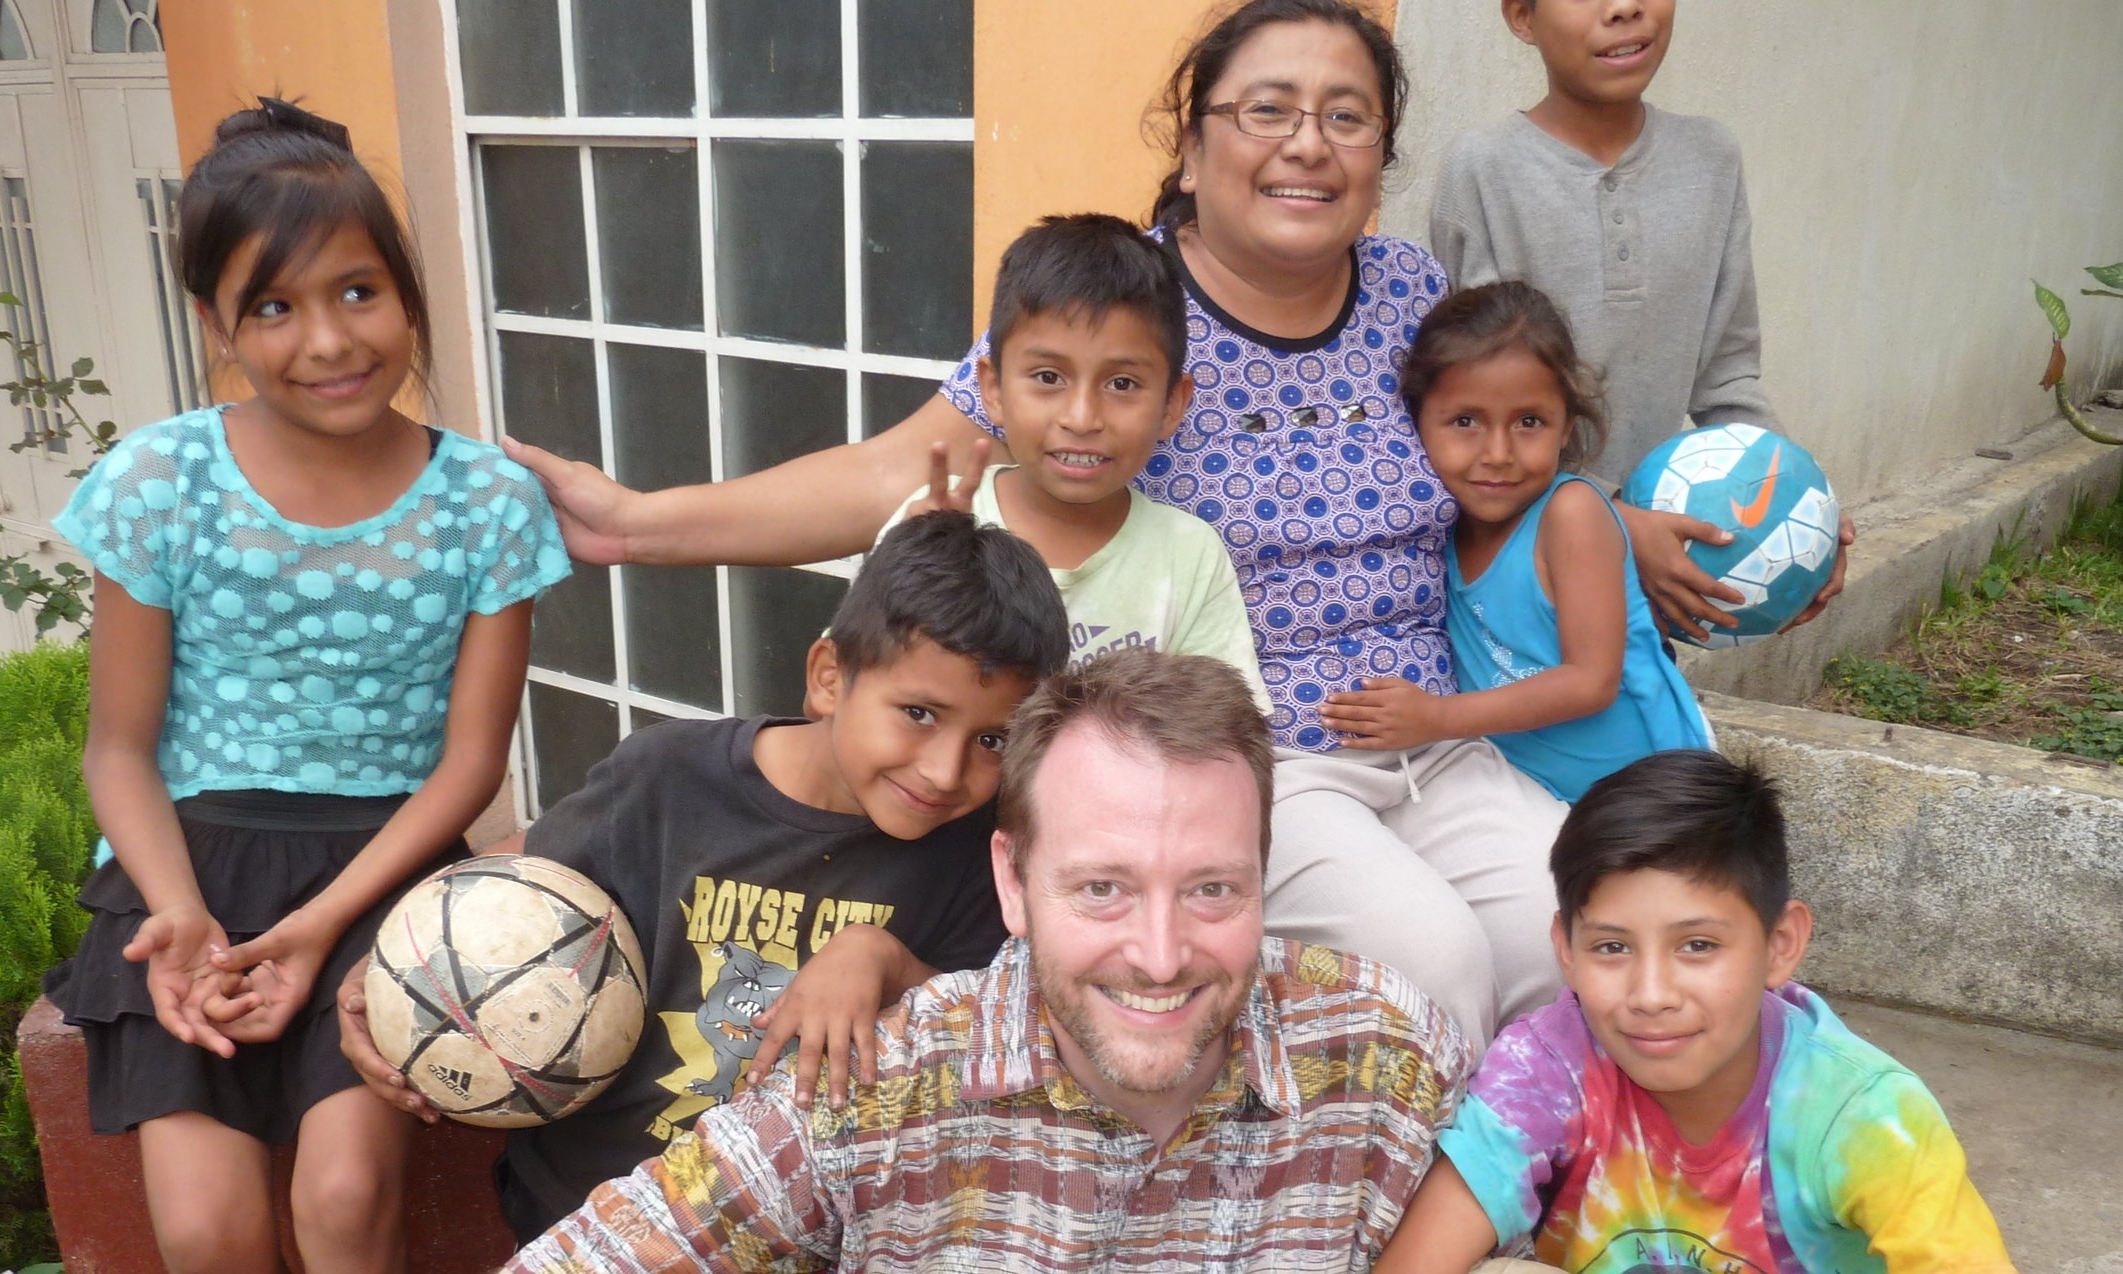 Pastor Chris Romig, Mission Trip